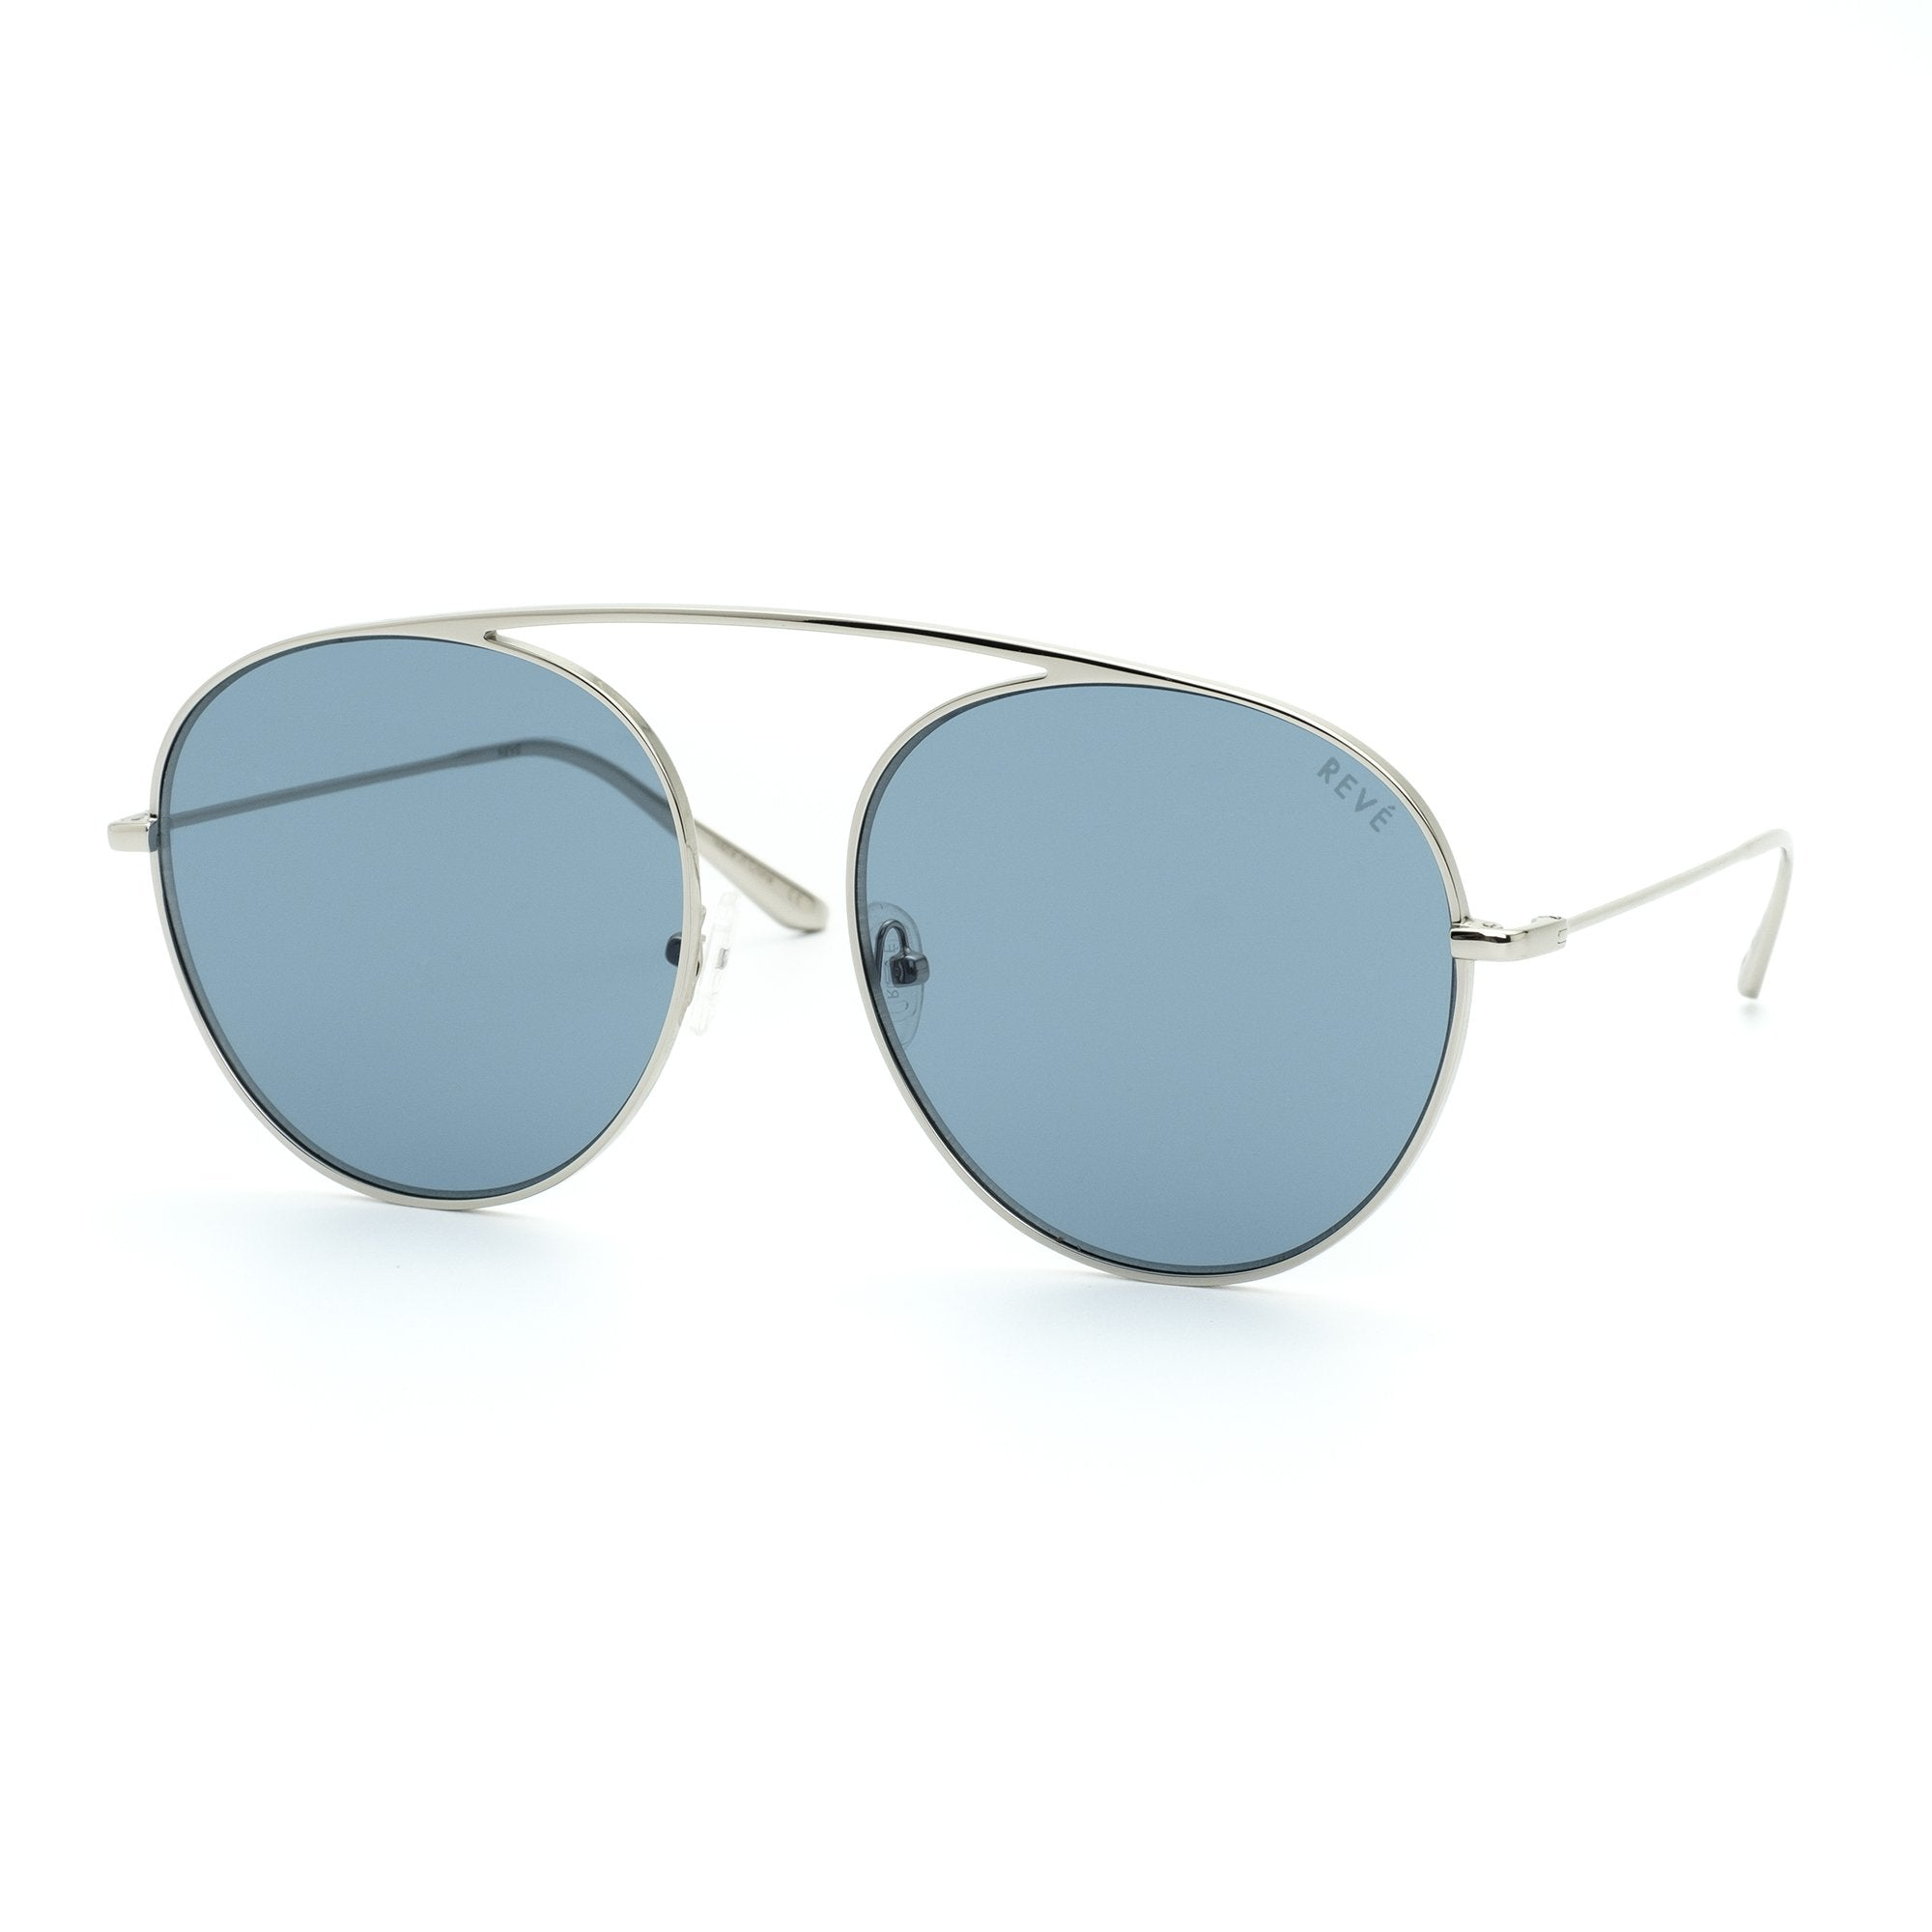 REVE by RENE 4AM aviator sunglasses | Dark aquamarine blue sunglasses